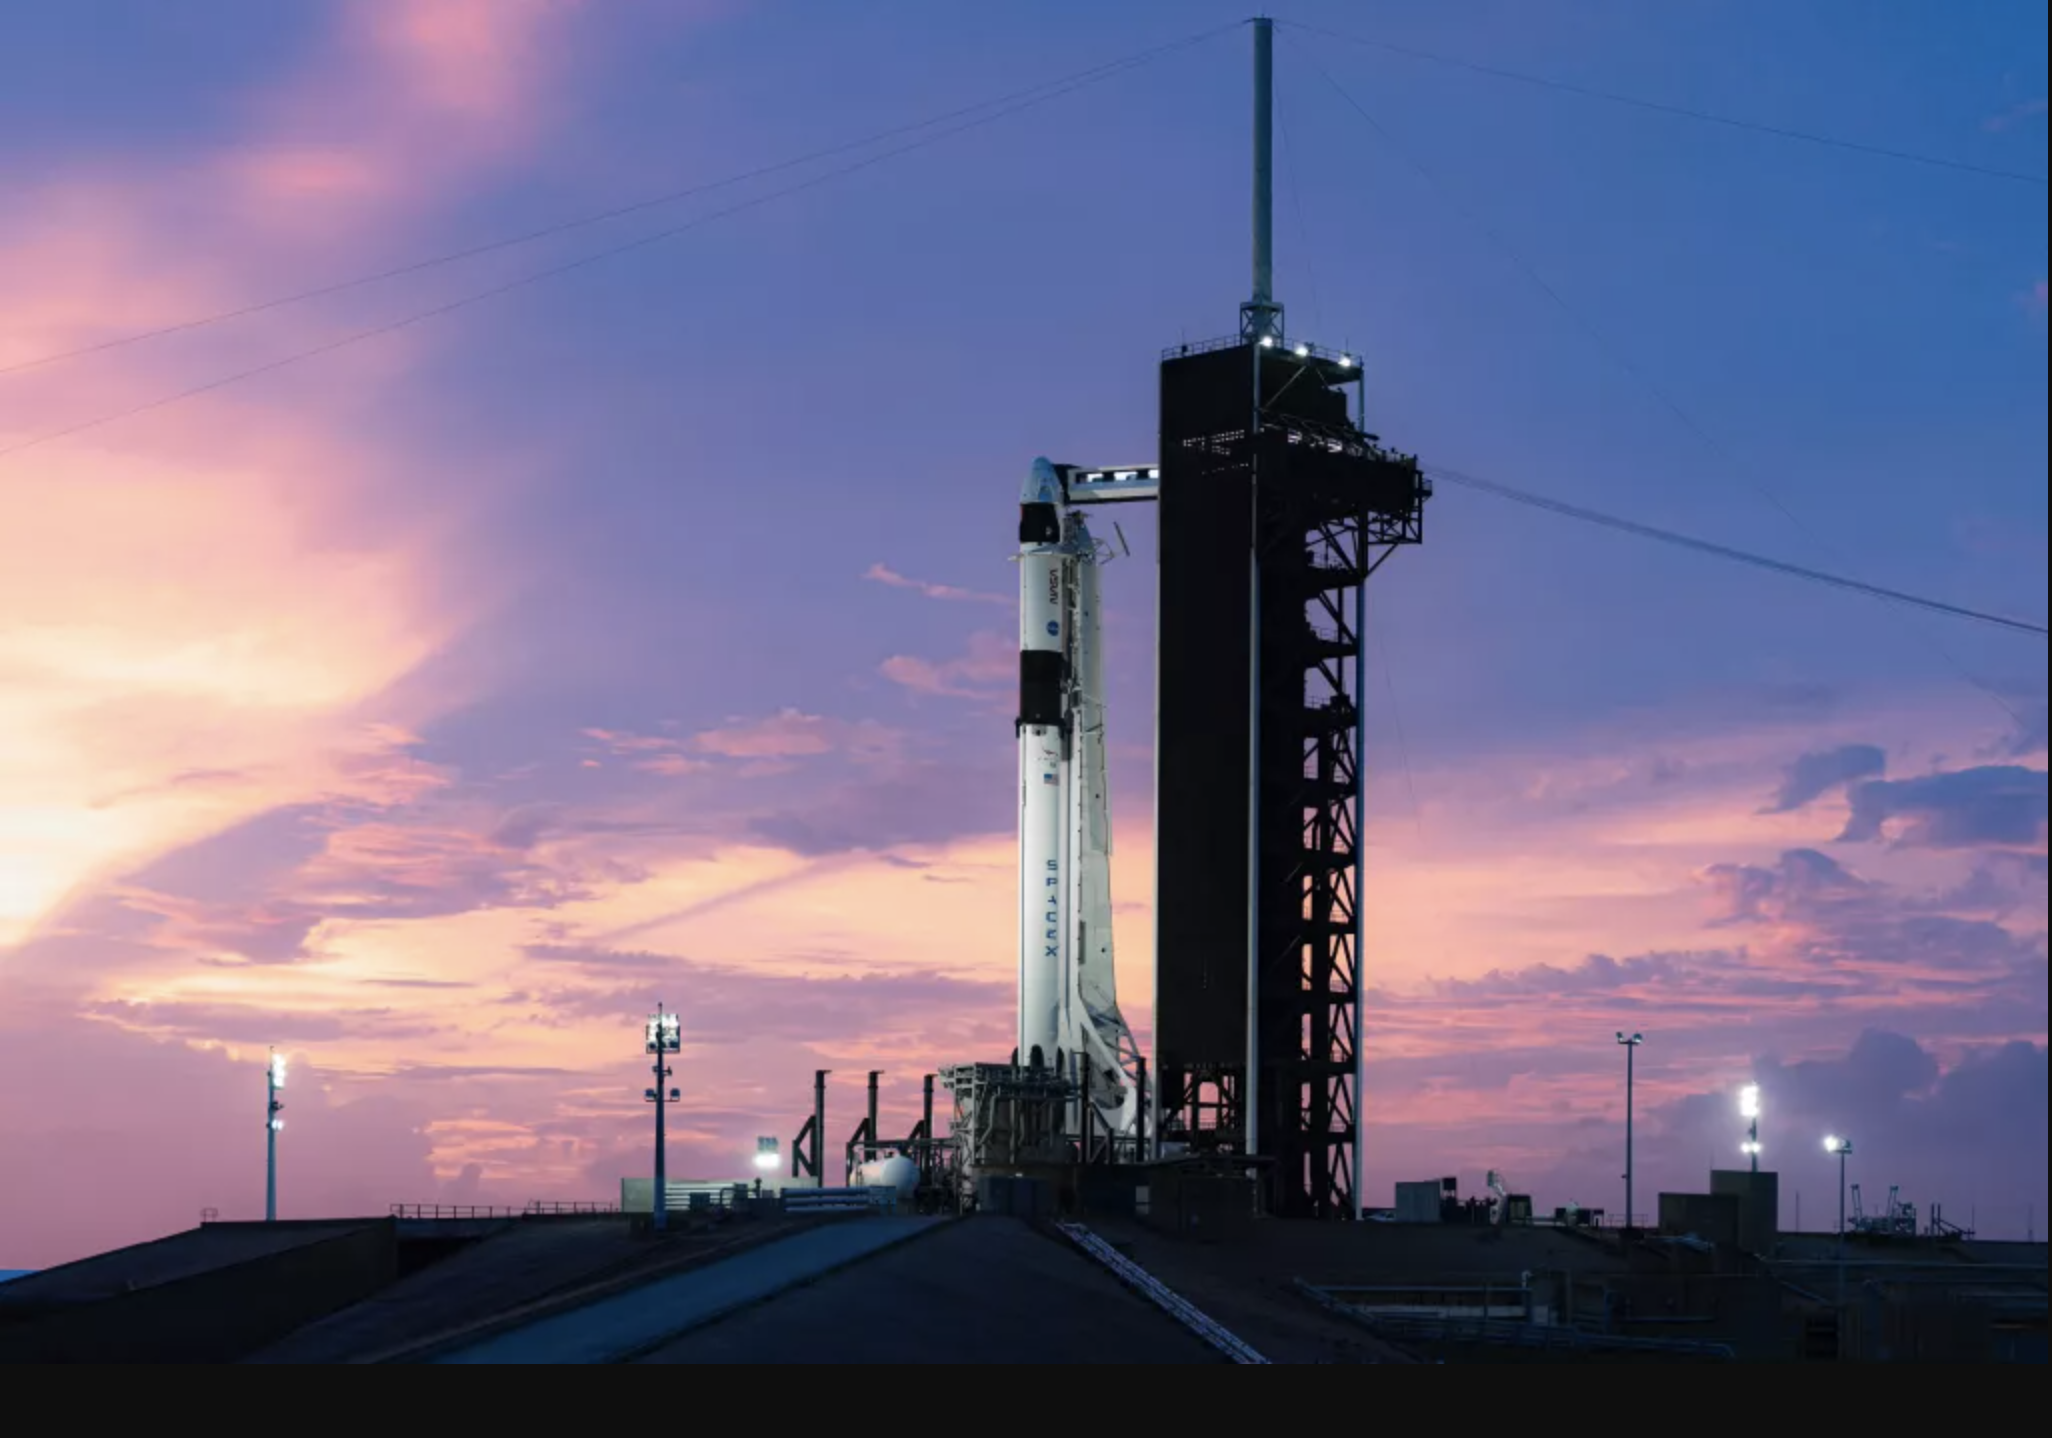 The SpaceX Falcon 9 rocket with the Crew Dragon capsule at Cape Canaveral before the Crew-1 launch on November 14, 2020